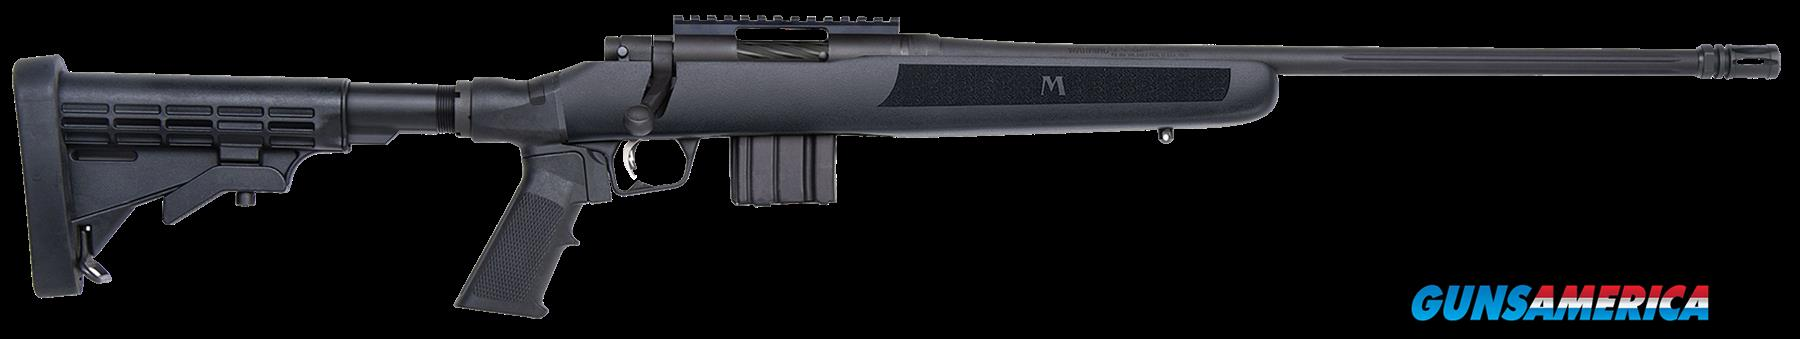 "Mossberg 27746 MVP FLEX Bolt 223 Rem/5.56 NATO 18.5"" TB 10+1 6-Position FLEX Black Stk Blued  Guns > Rifles > Mossberg Rifles > Other Bolt Action"